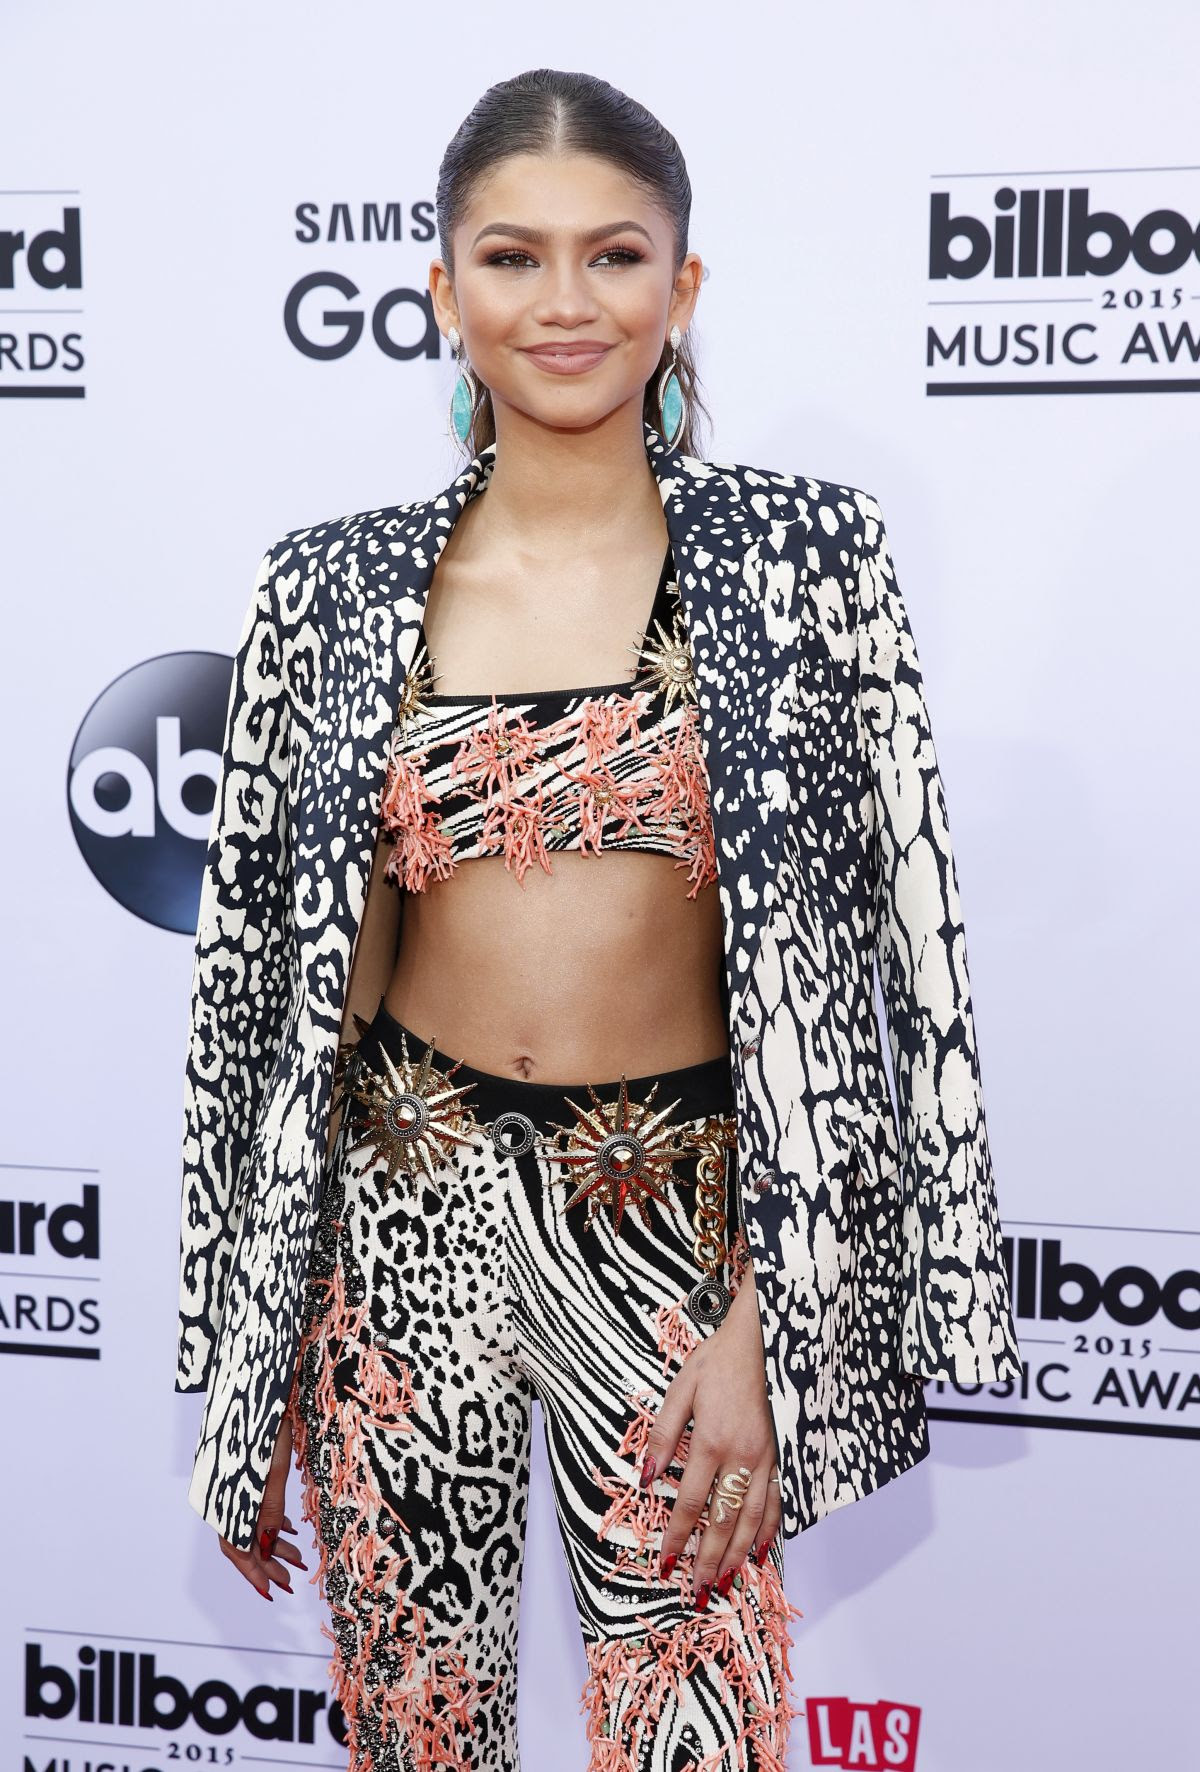 ZENDAYA COLEMAN at 2015 Billboard Music Awards in Las Vegas